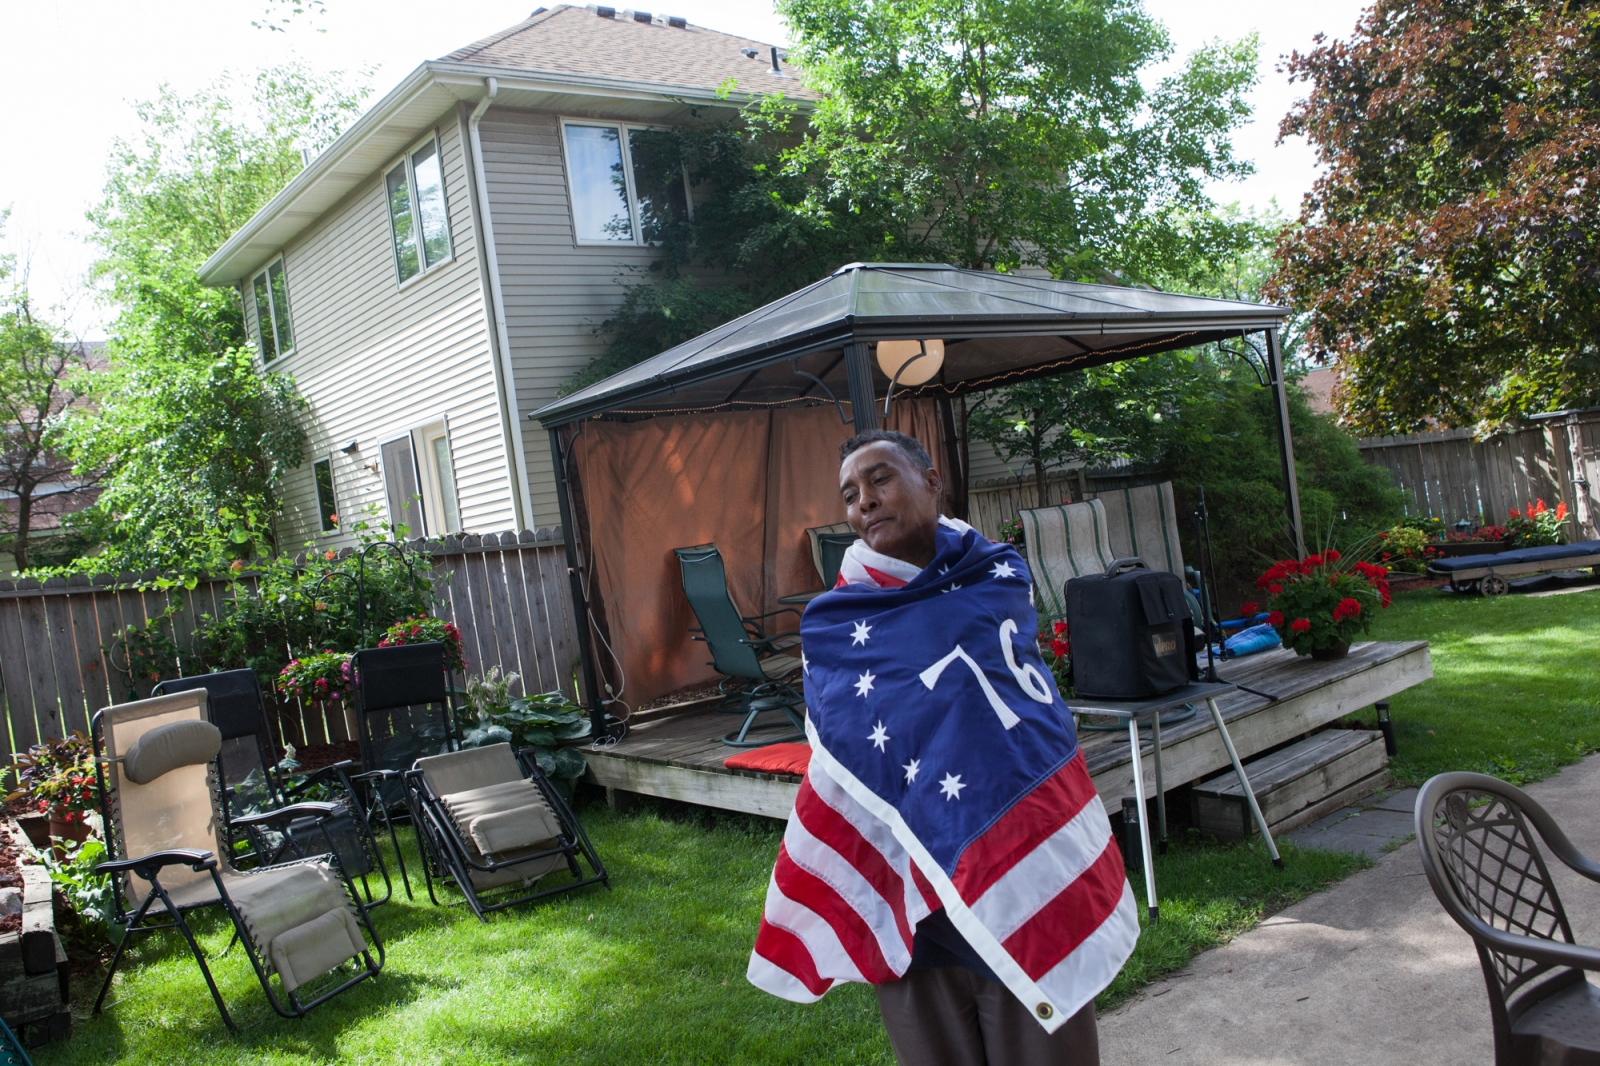 Osman Omar, who says he will run for president of Somalia for the second time in 2016, wraps himself in an American flag while taking a break from helping to prepare for a community Iftar dinner.